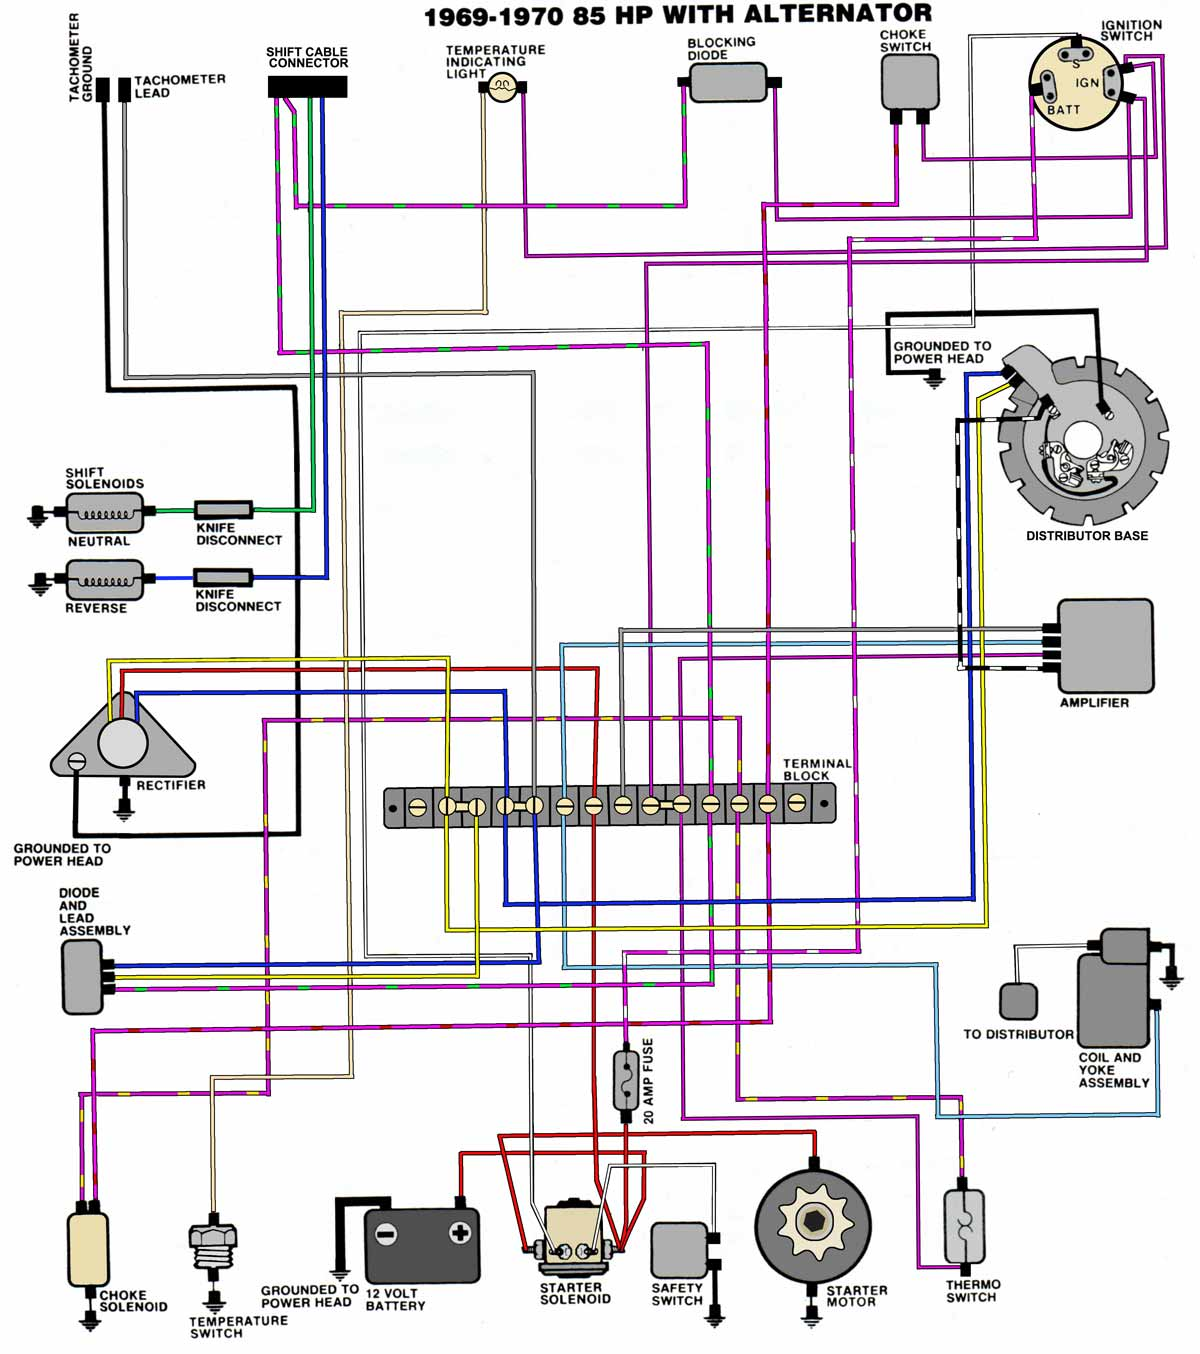 69_70_V4 1969 85hp ignition wiring help page 1 iboats boating forums omc wiring harness diagram at pacquiaovsvargaslive.co